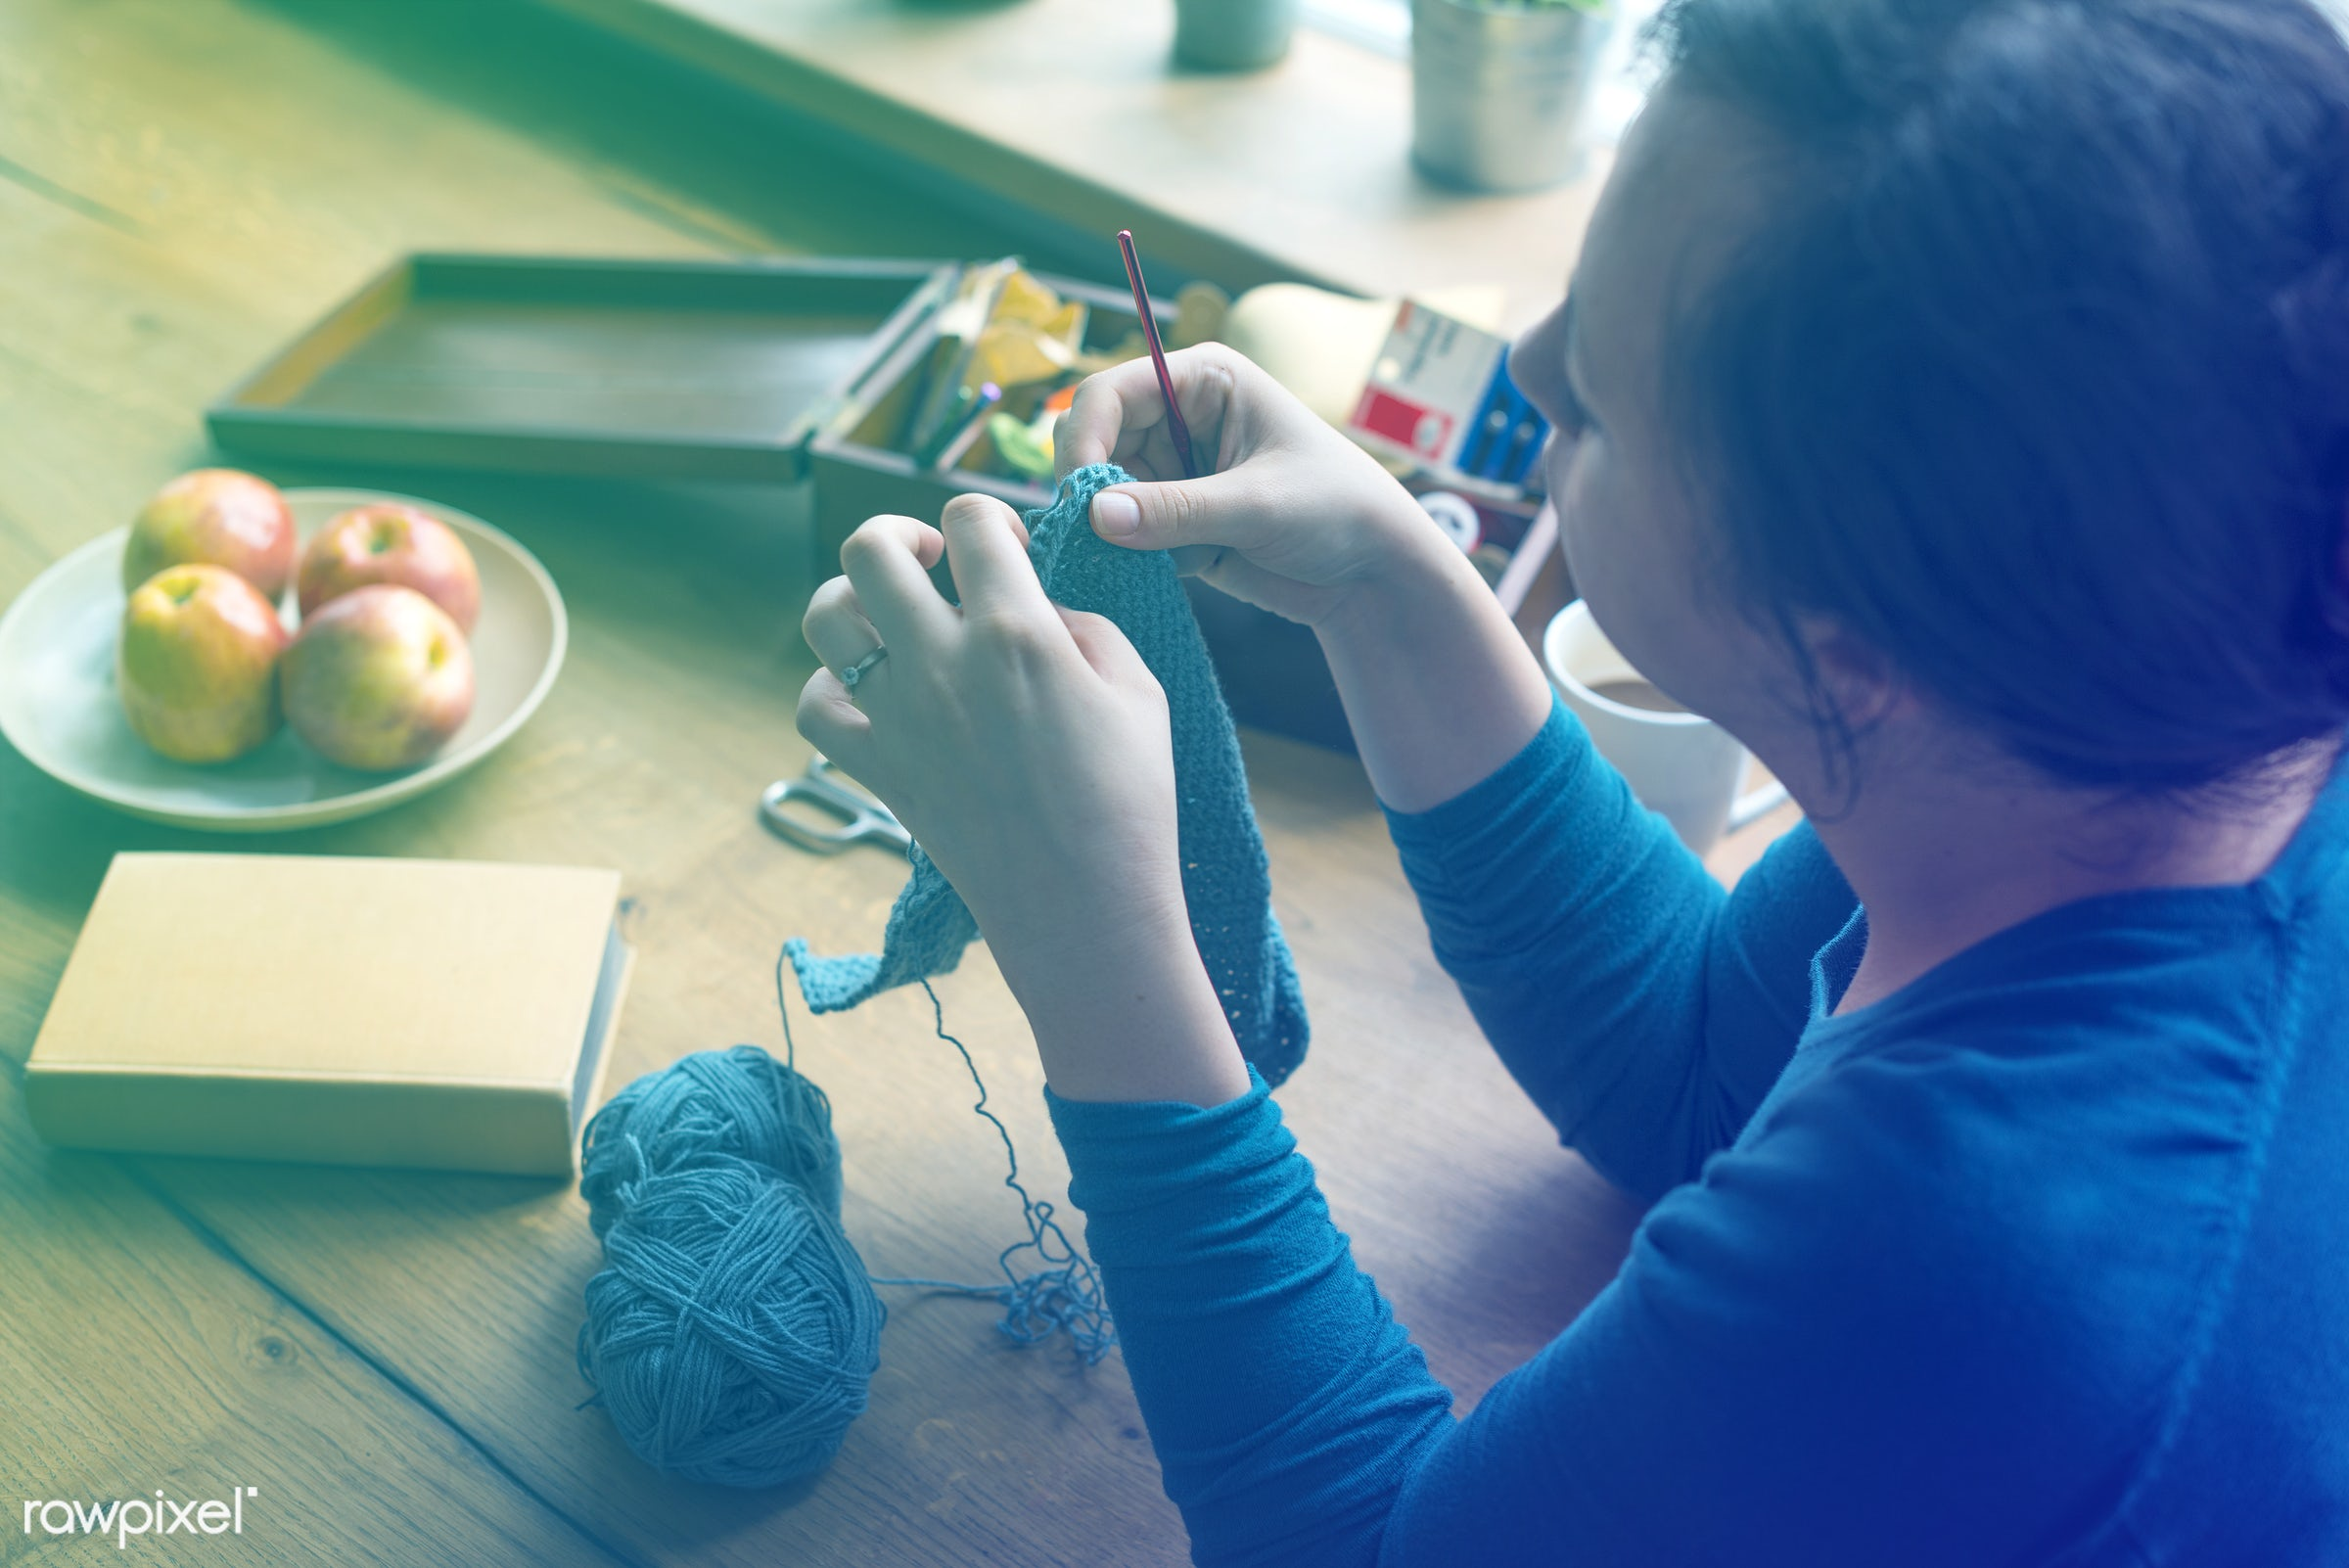 activity, cold, cozy, craft, creative, creativity, crochet, design, detail, family, fashion, filter, fingers, fruits,...